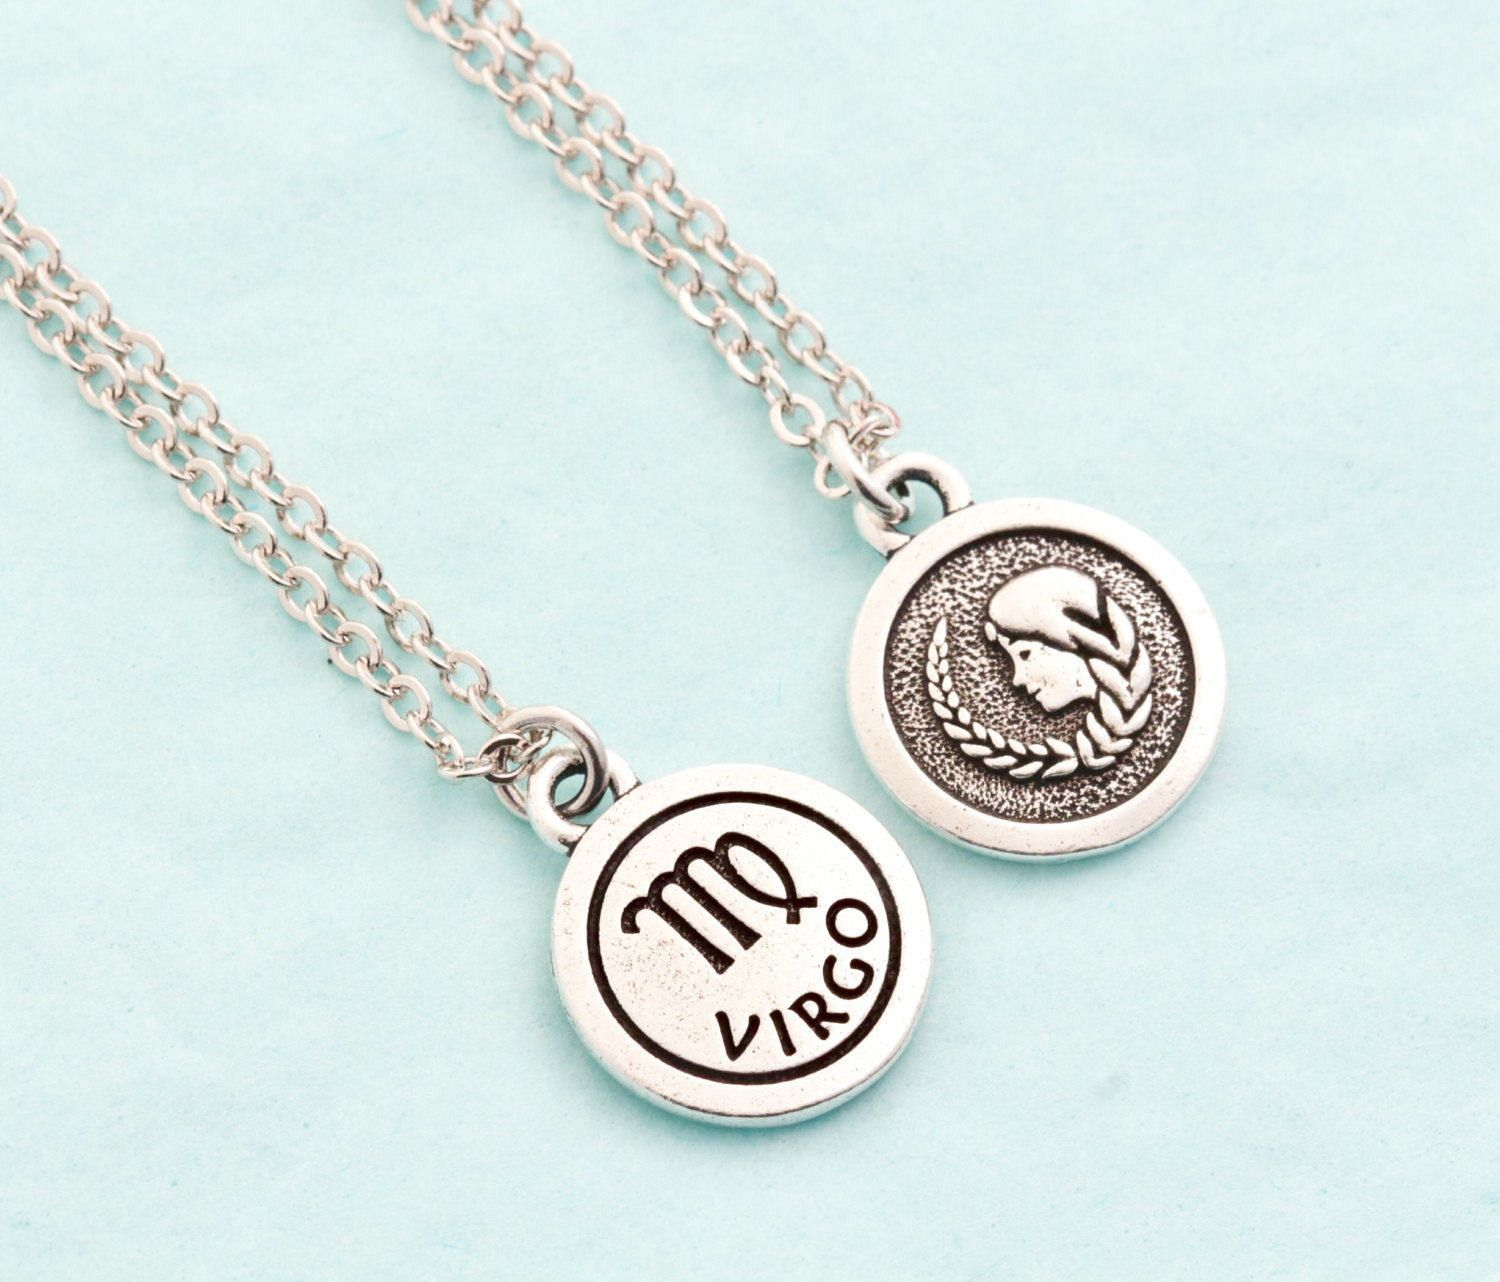 vi necklace virgo dear addison products